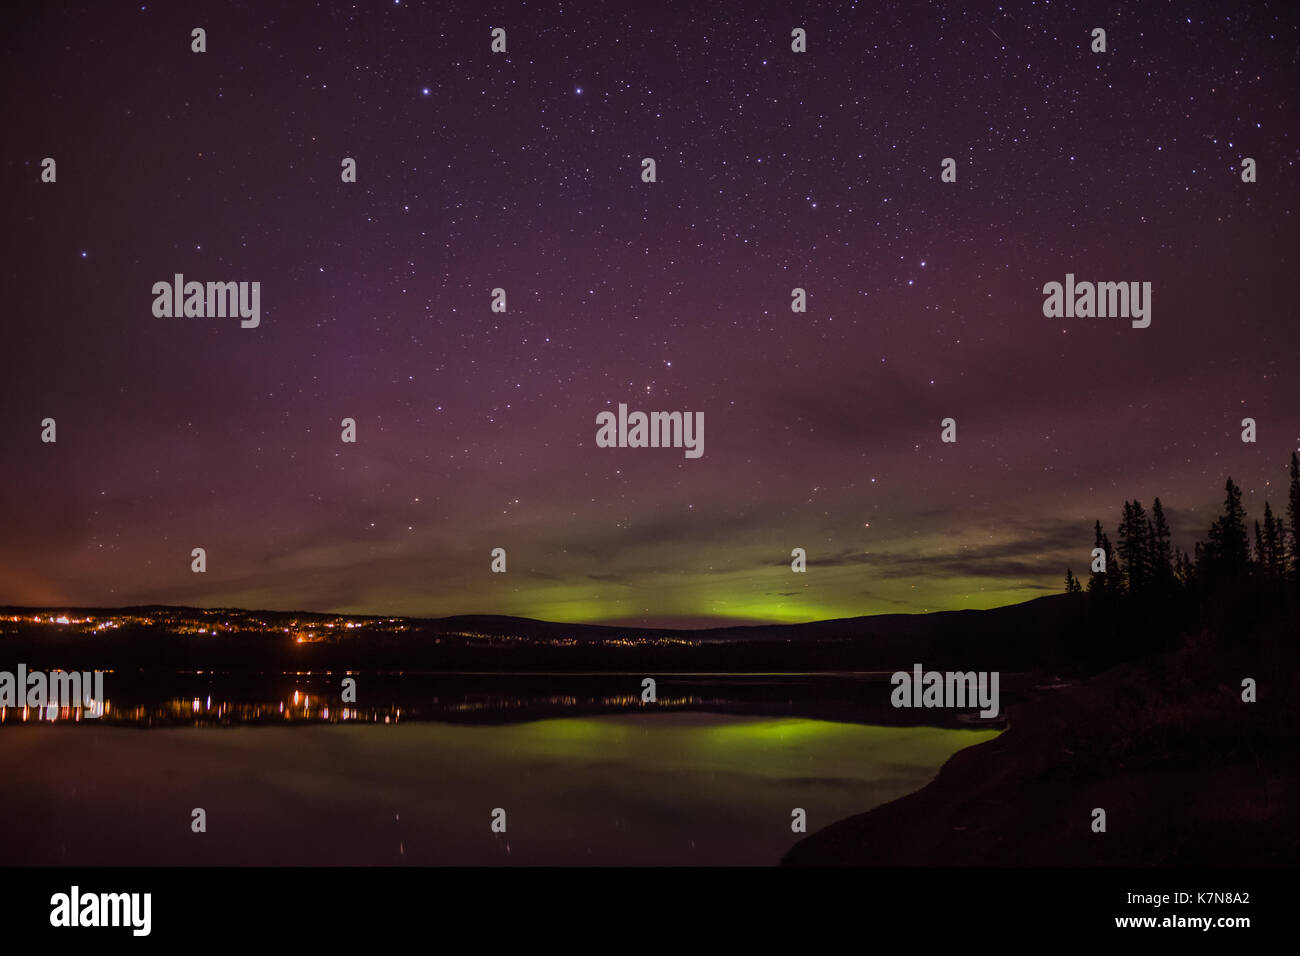 Aurora borealis lights dancing over village and lake - Stock Image